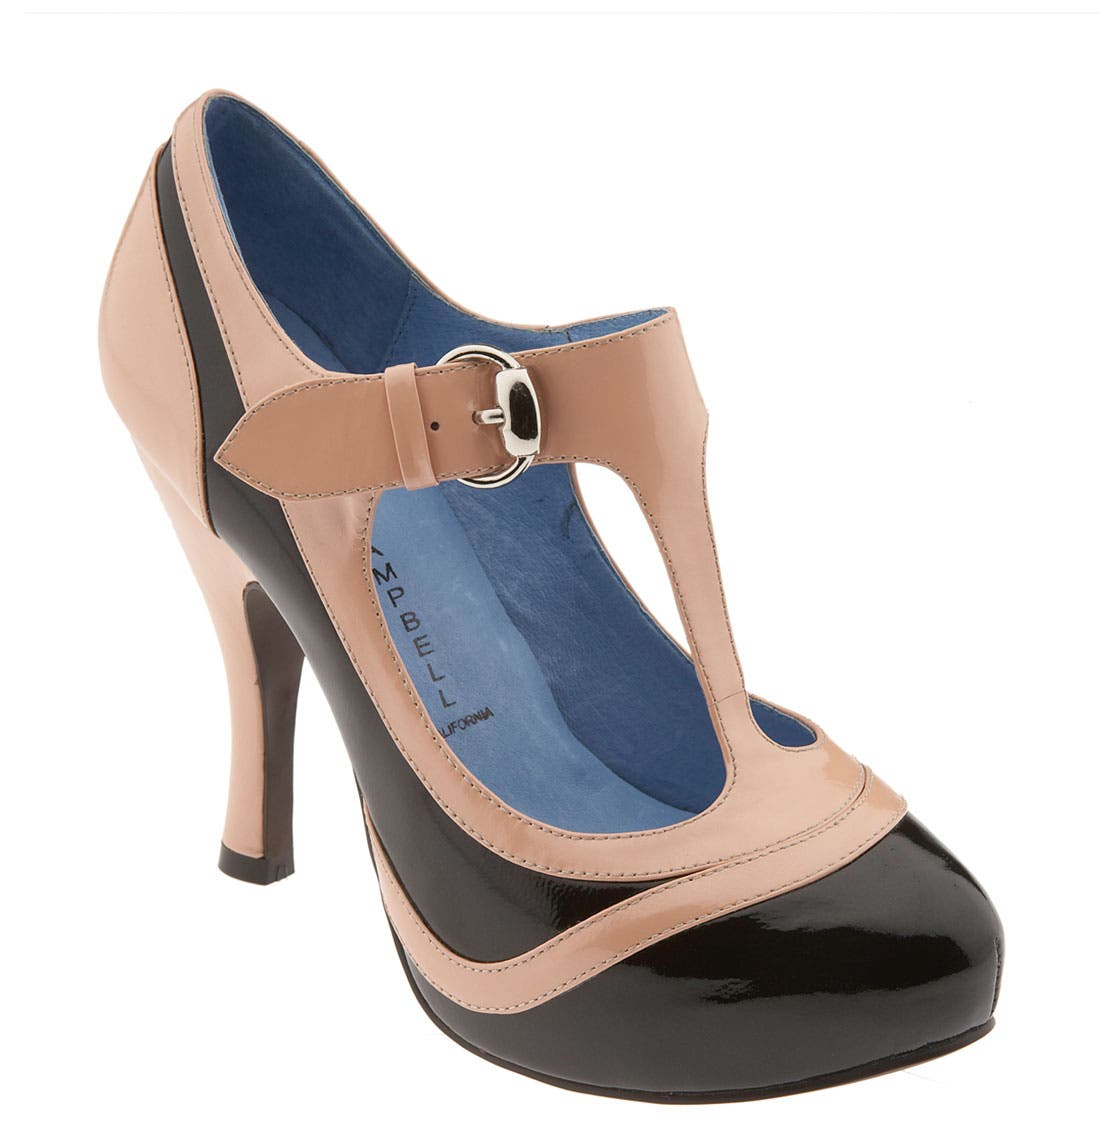 Main Image - Jeffrey Campbell 'Like 2' Pump